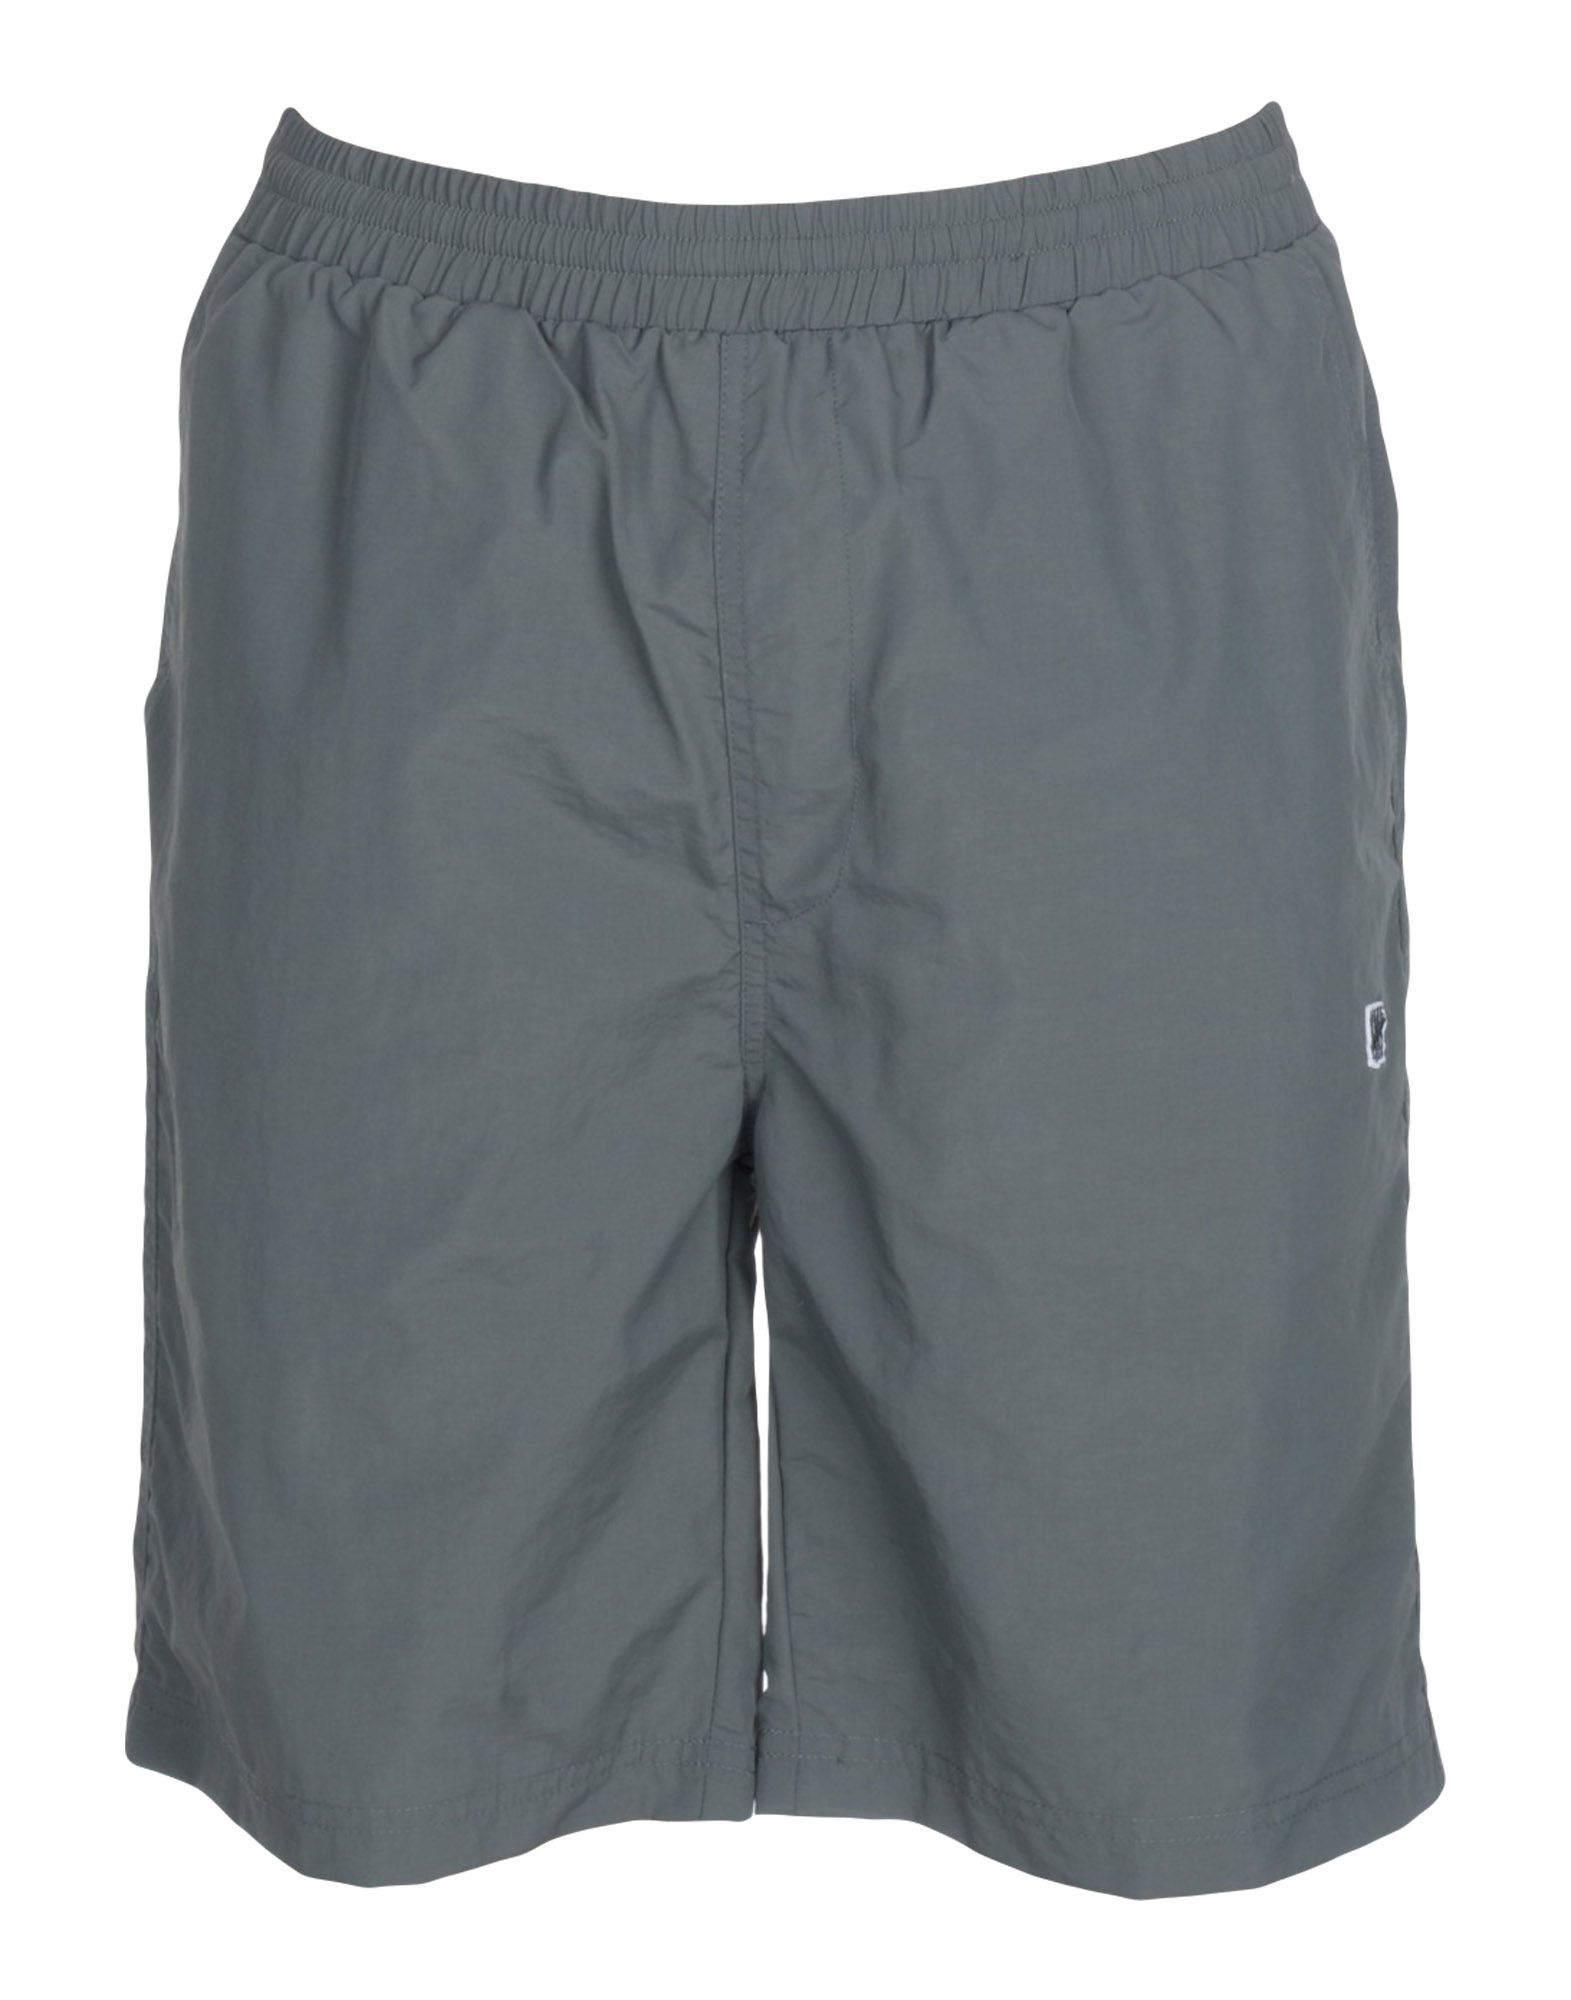 UNDEFEATED Swim Shorts in Grey